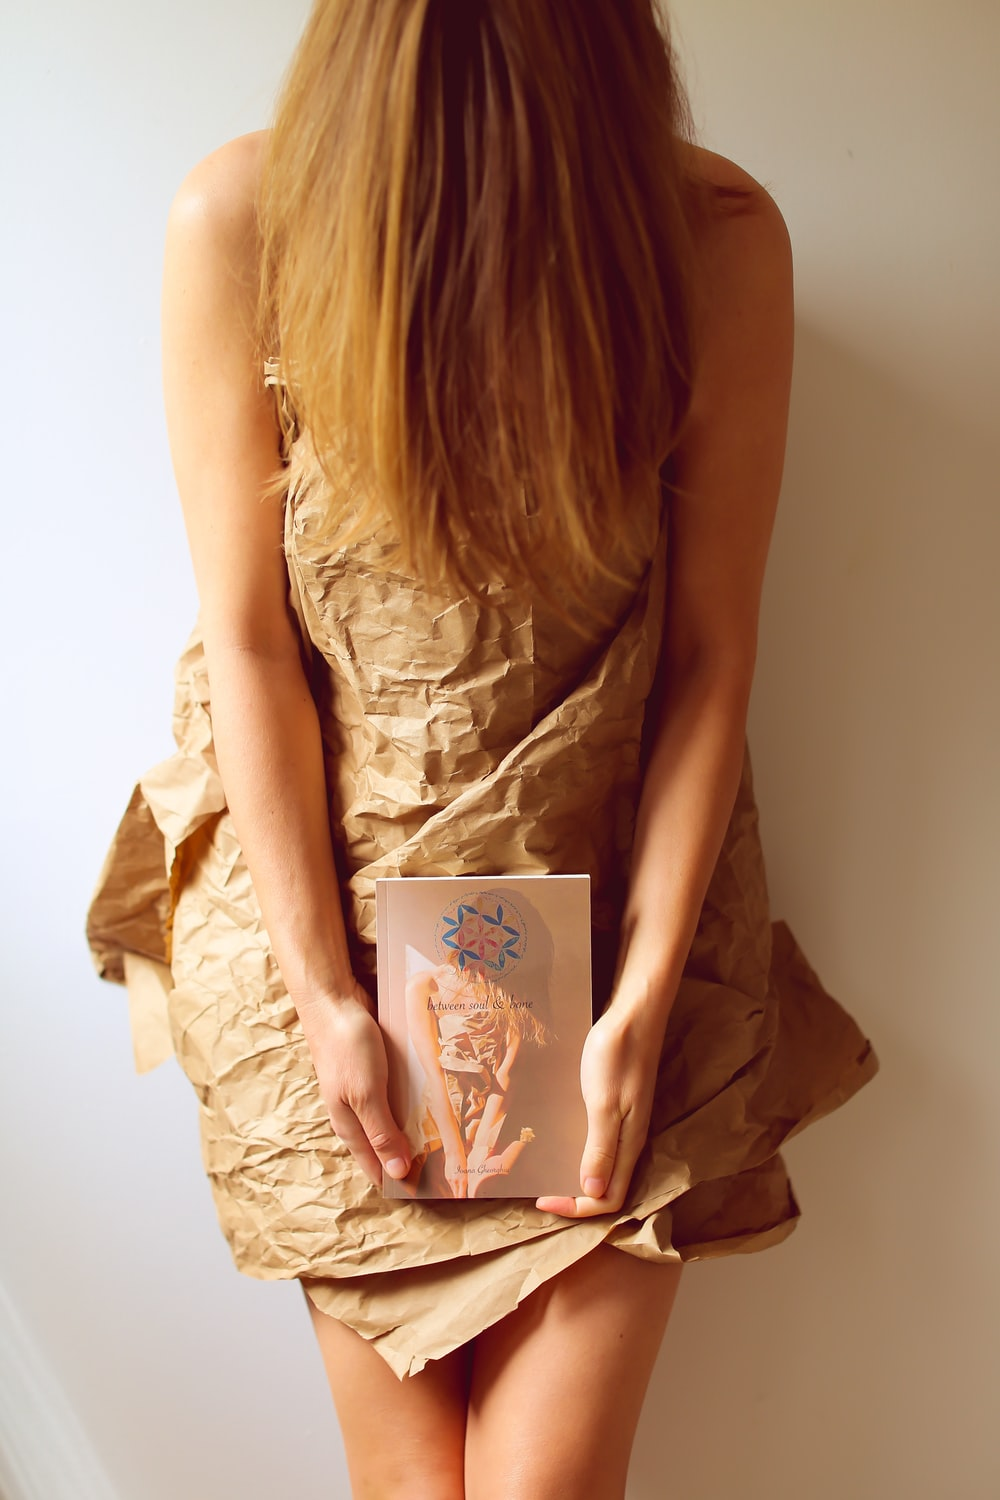 woman in brown dress holding book